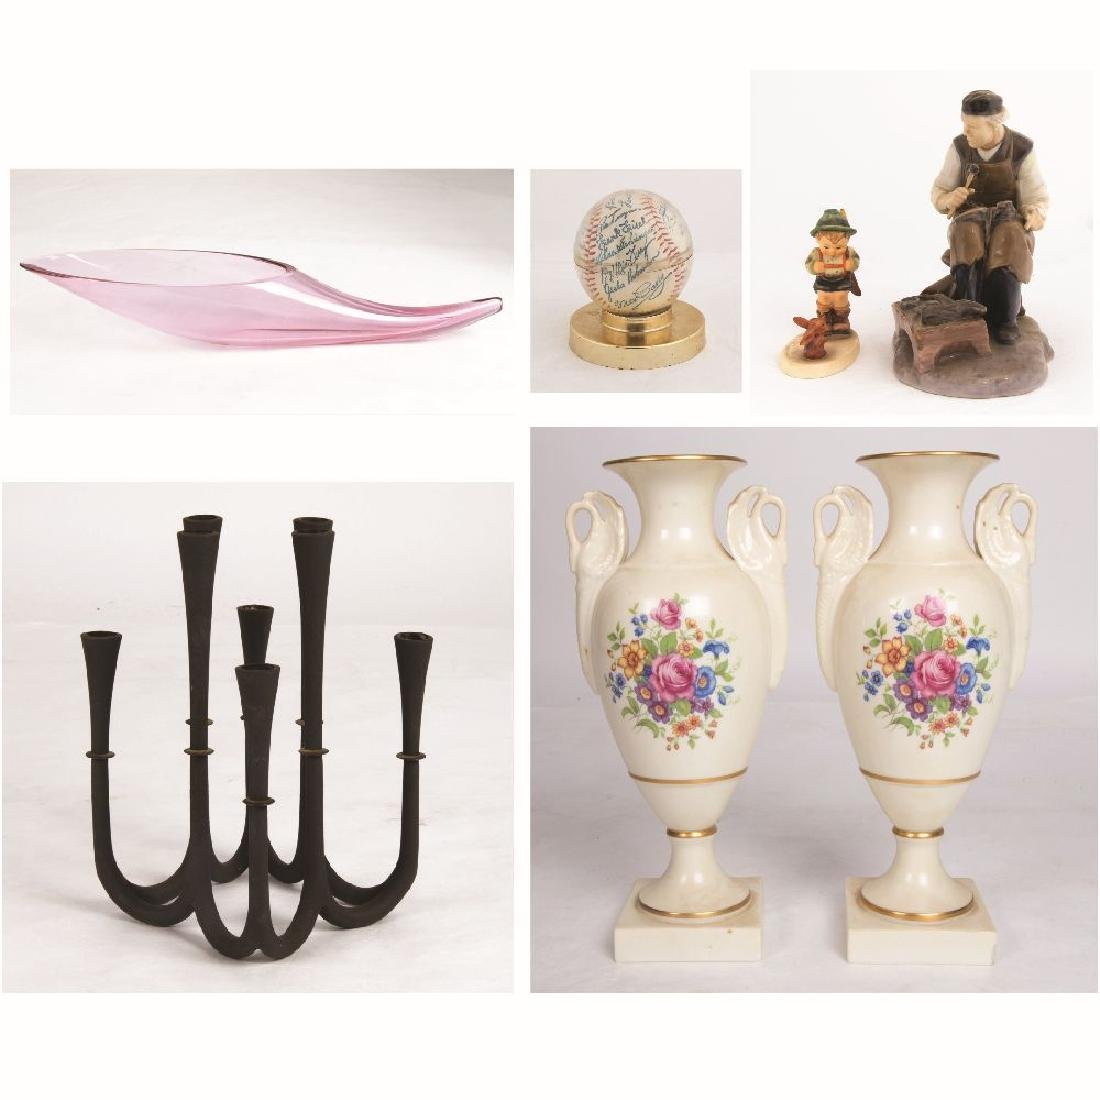 A Miscellaneous Collection of Metal, Porcelain and